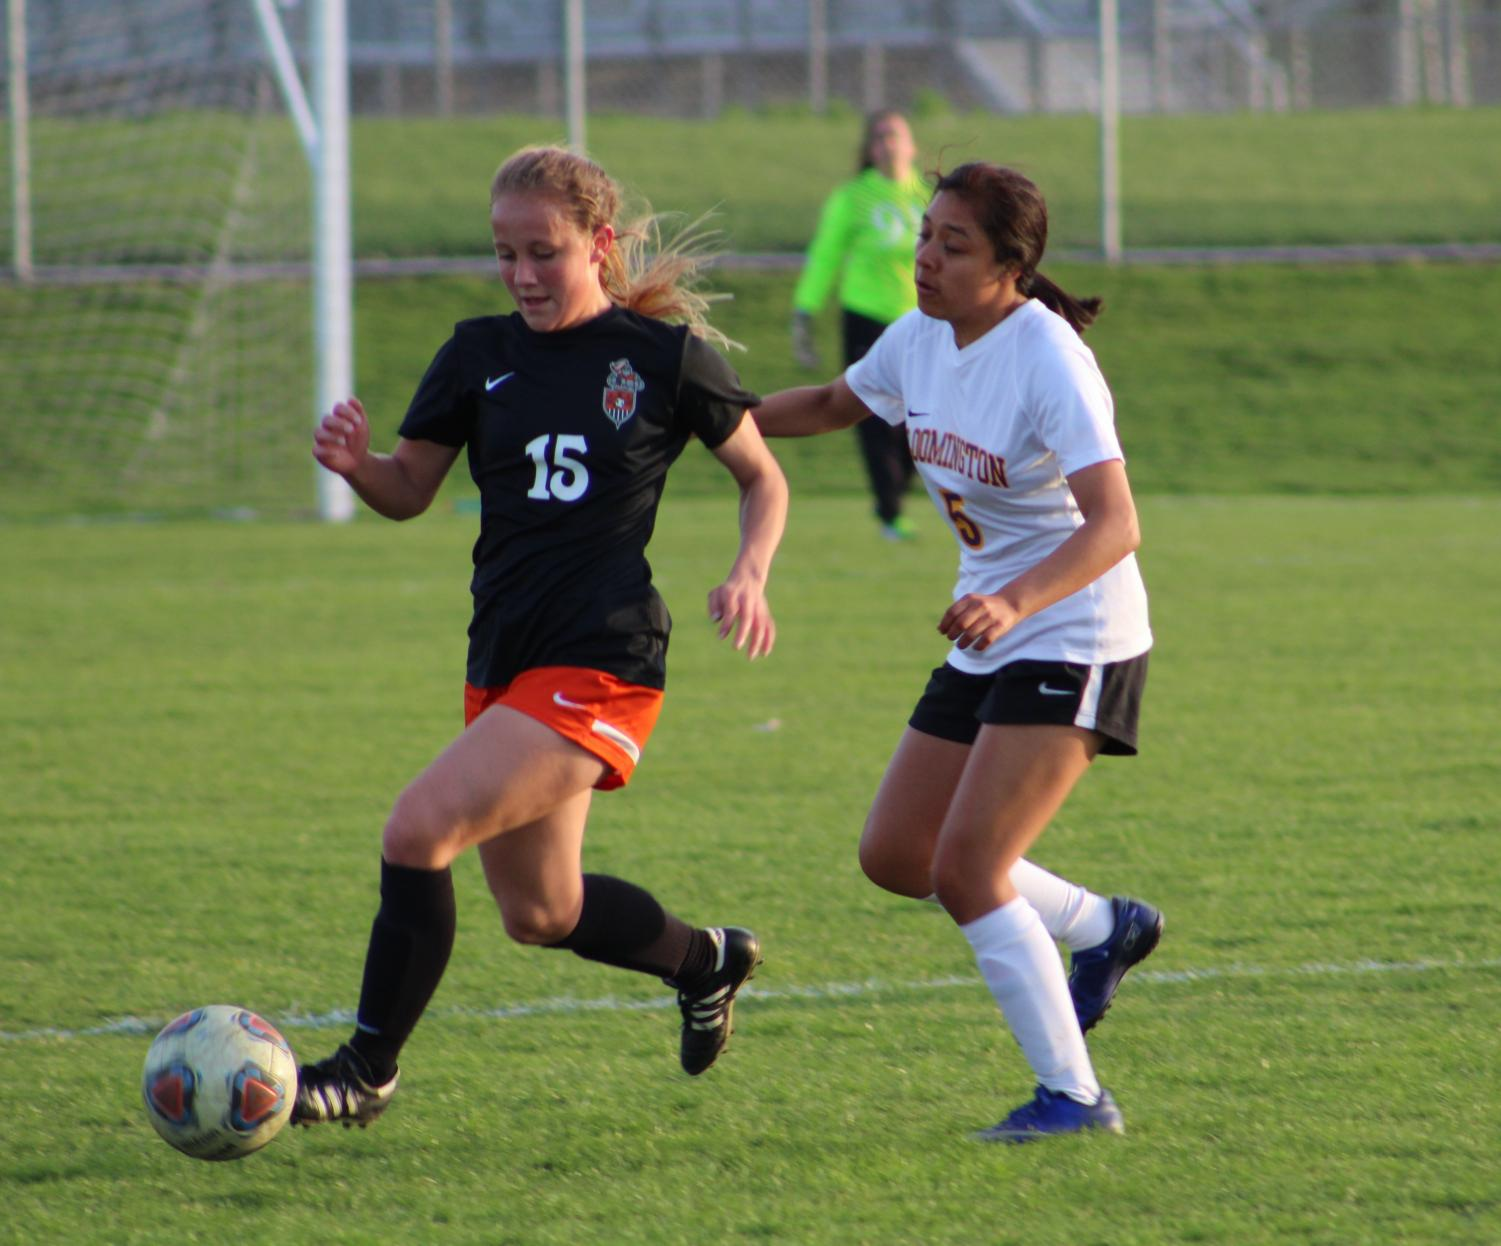 Katy+Quinn%2C+who+plays+defense%2C+keeps+the+ball+from+getting+into+the+other+teams+possession.+Quinn+plans+on+attending+Southern+Illinois+University.